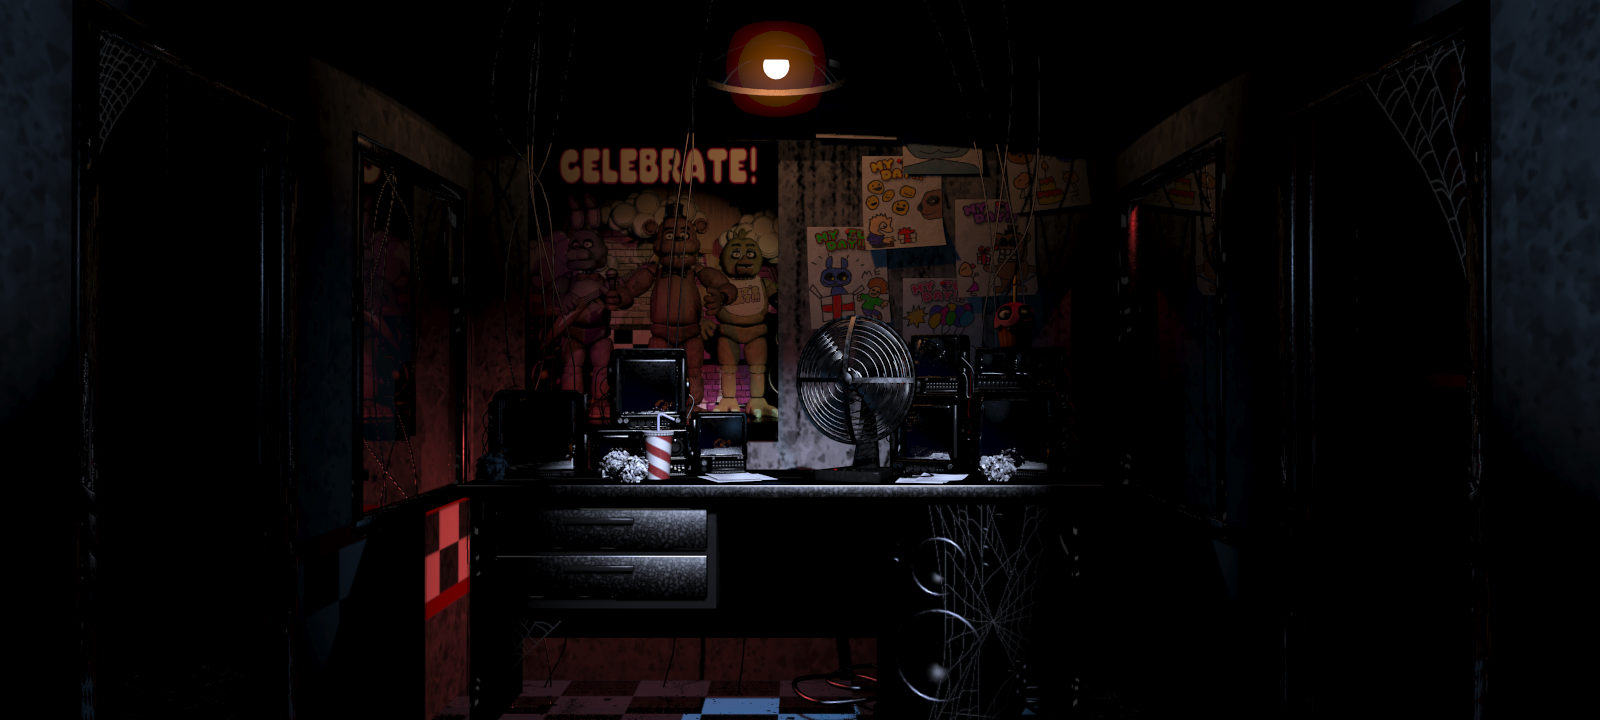 The Game Reader Five Nights at Freddys Information and  : OfficeClean from thegamereader.blogspot.com size 1600 x 720 png 844kB